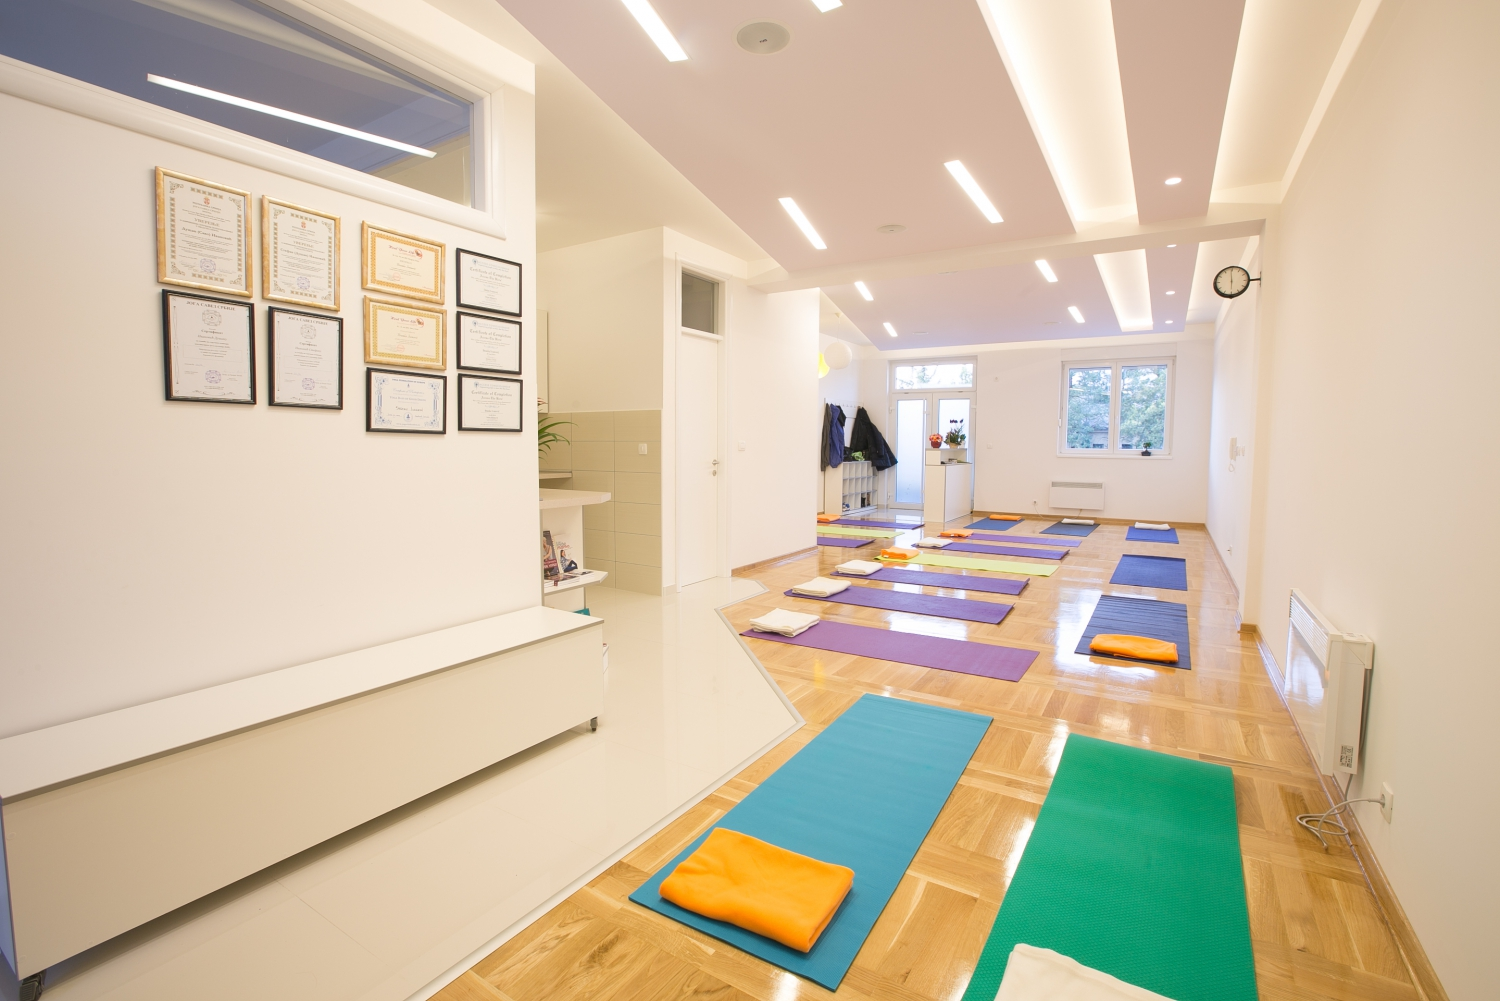 The Centre for Body and Soul